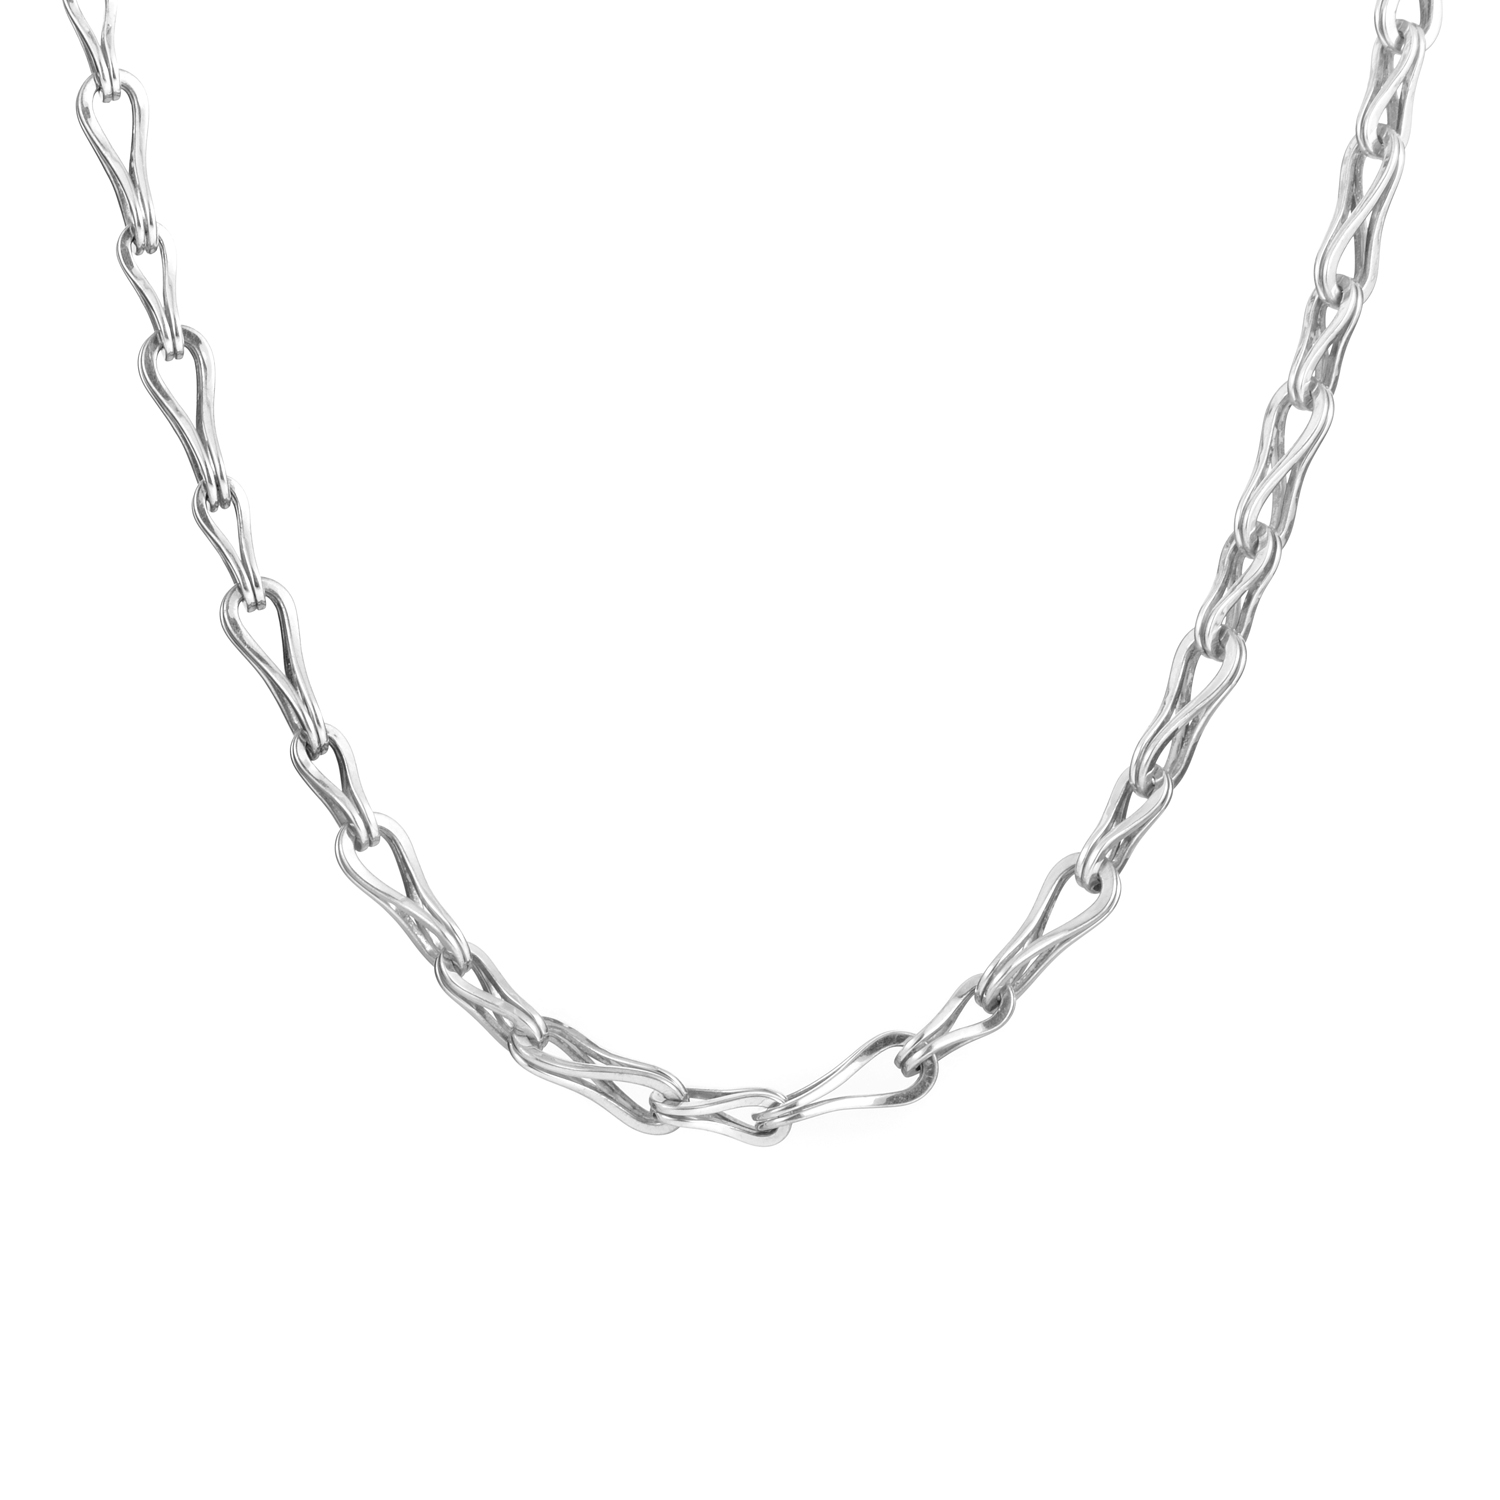 Sterling Silver Hook Chain Necklace 610803098400600